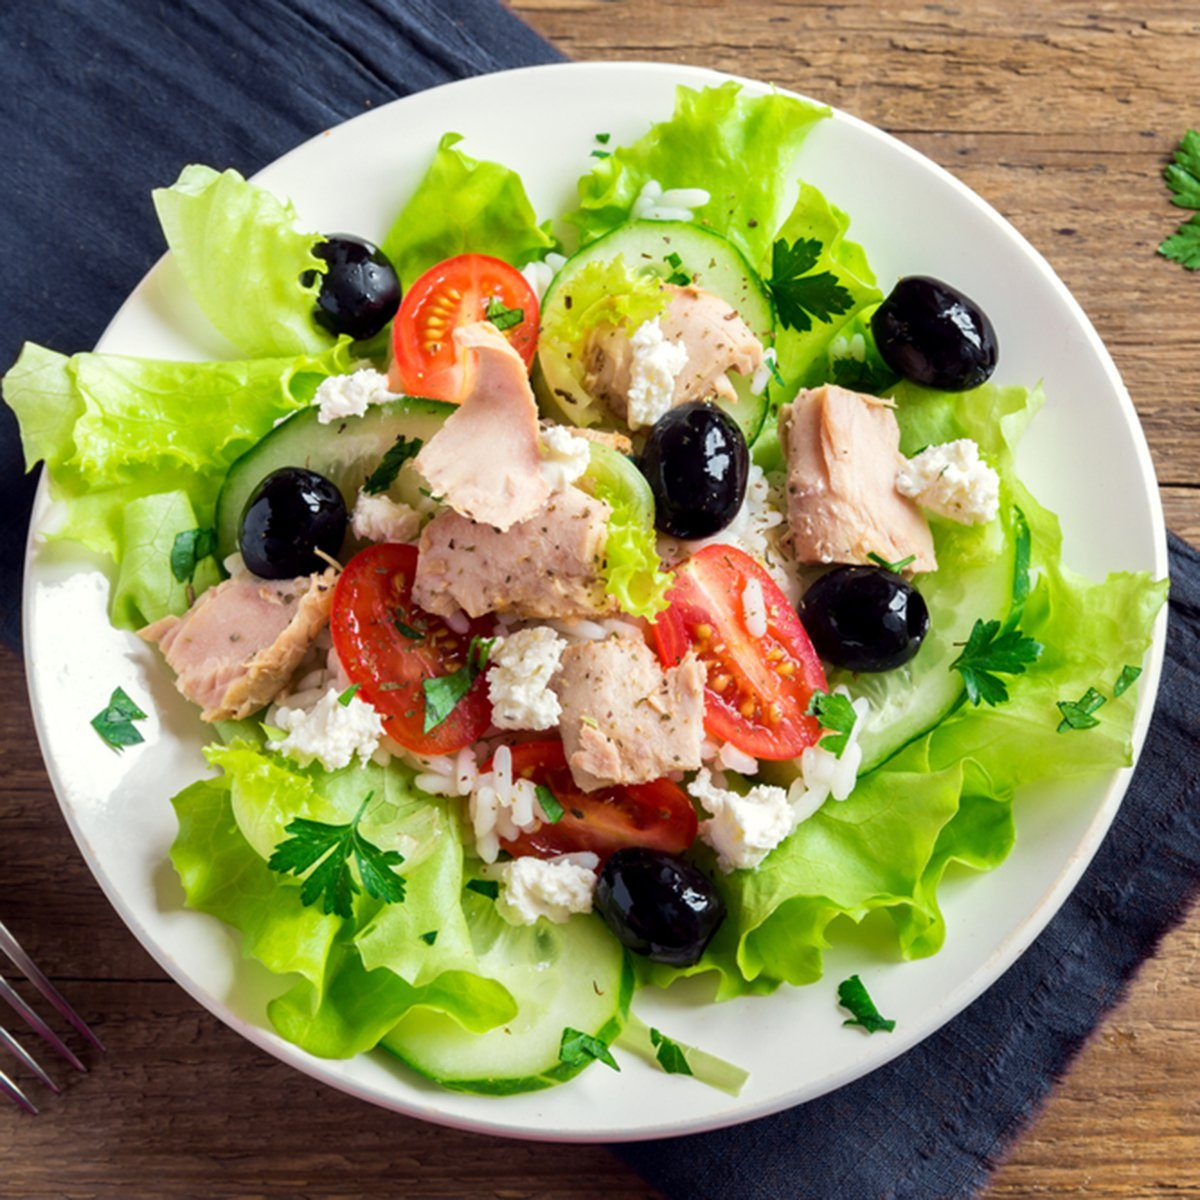 Tuna salad with tomatoes, black olives, rice, feta cheesse and greens on rustic wooden background with copy space